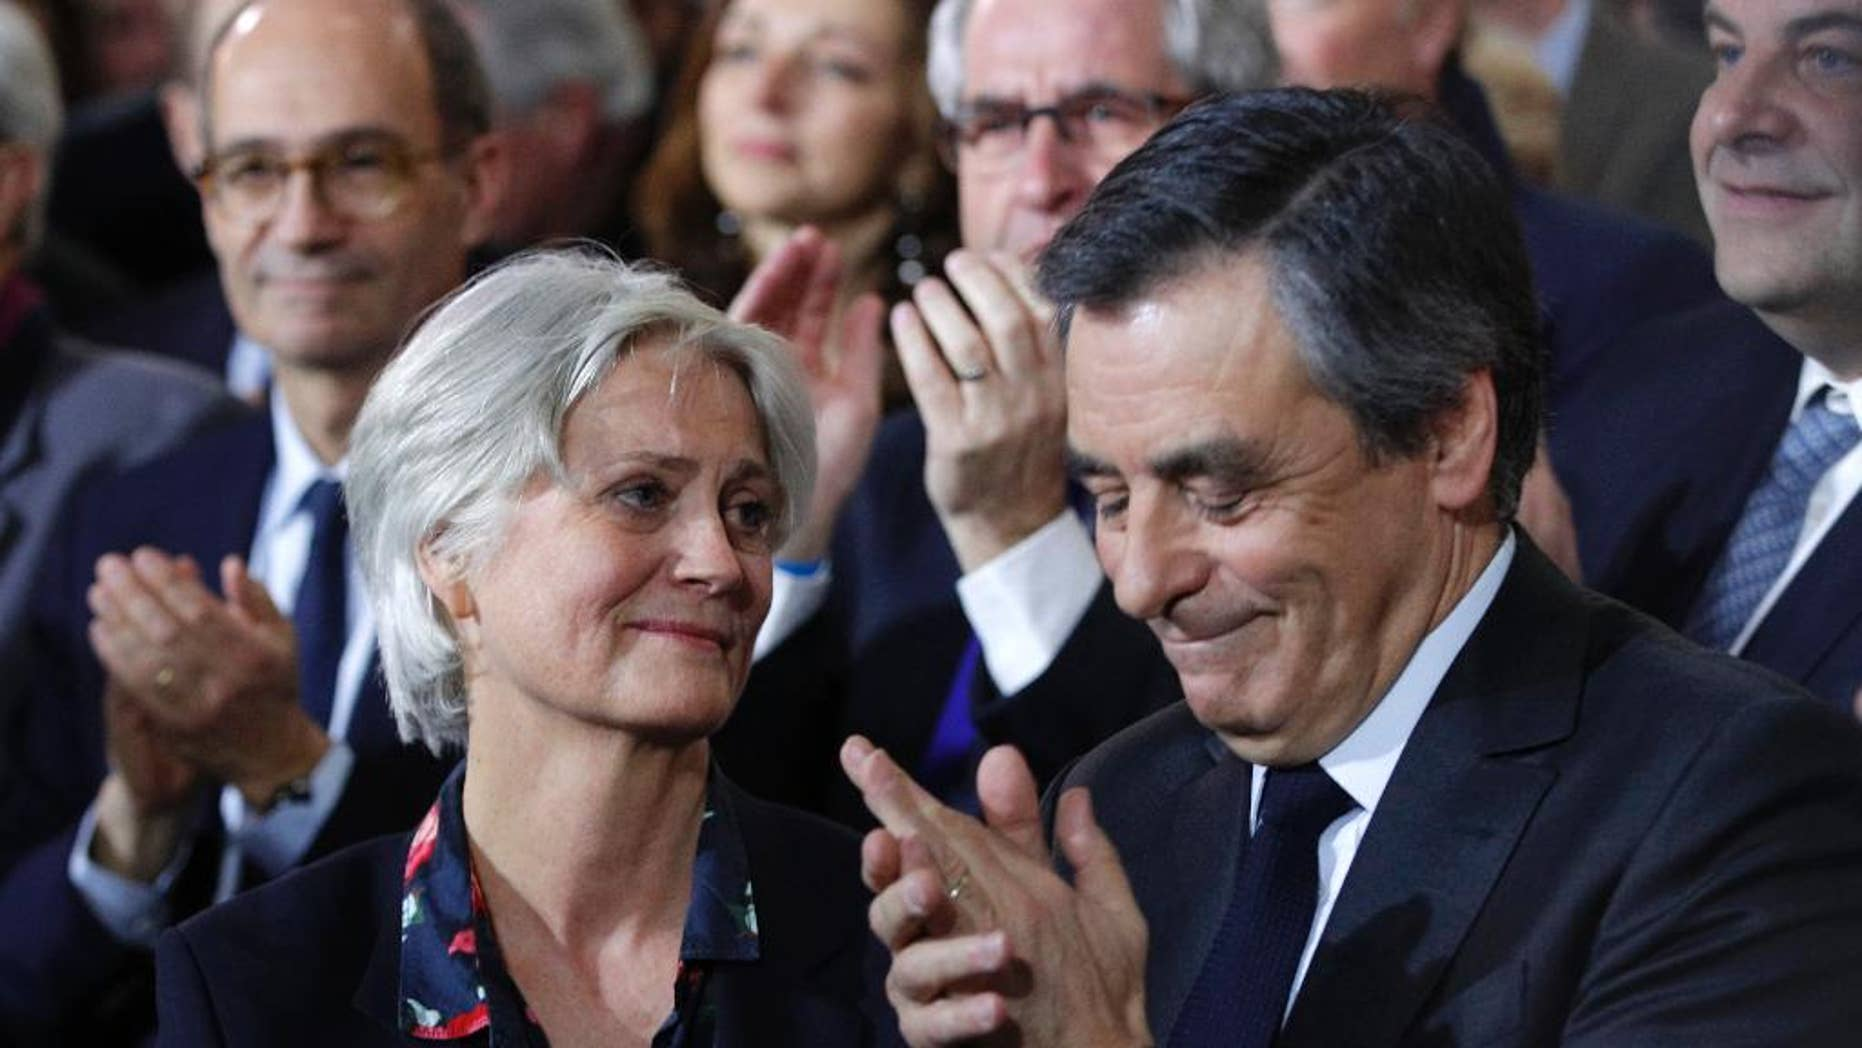 Conservative presidential candidate Francois Fillon applauds while his wife Penelope looks on as they attend a campaign meeting in Paris, Sunday, Jan. 29, 2017. Financial prosecutors are investigating an allegedly fake but handsomely paid job held by the former prime minister's wife, Penelope. (AP Photo/Christophe Ena)